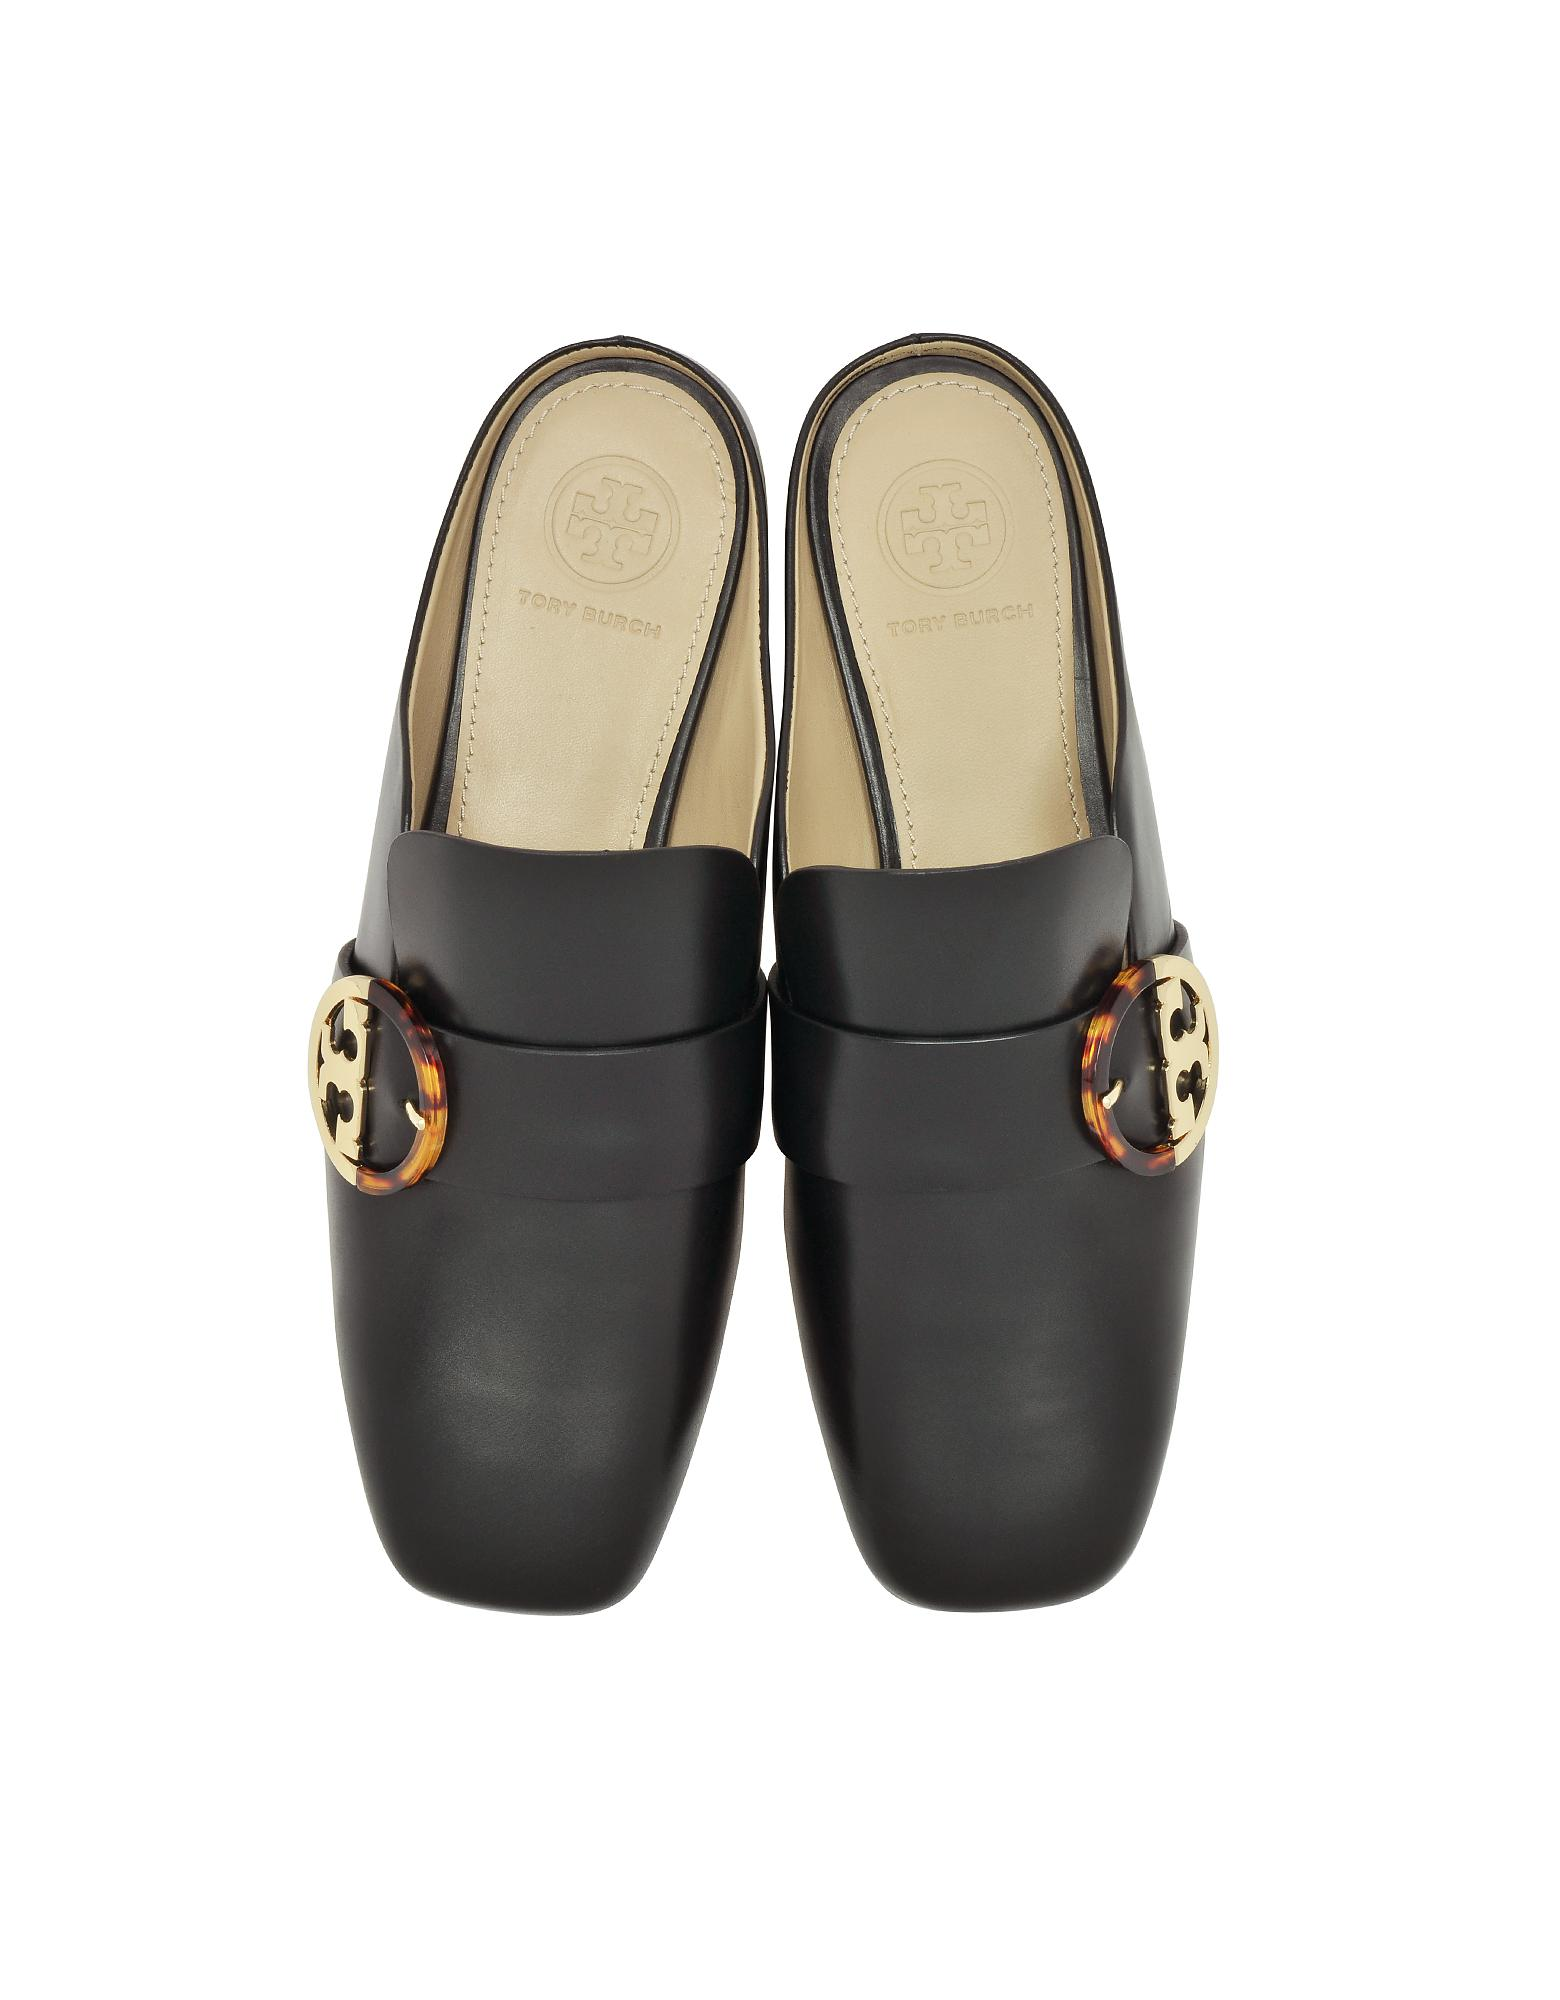 82e5fa59cdc7 Lyst - Tory Burch Sidney Black Leather Backless Loafers in Black